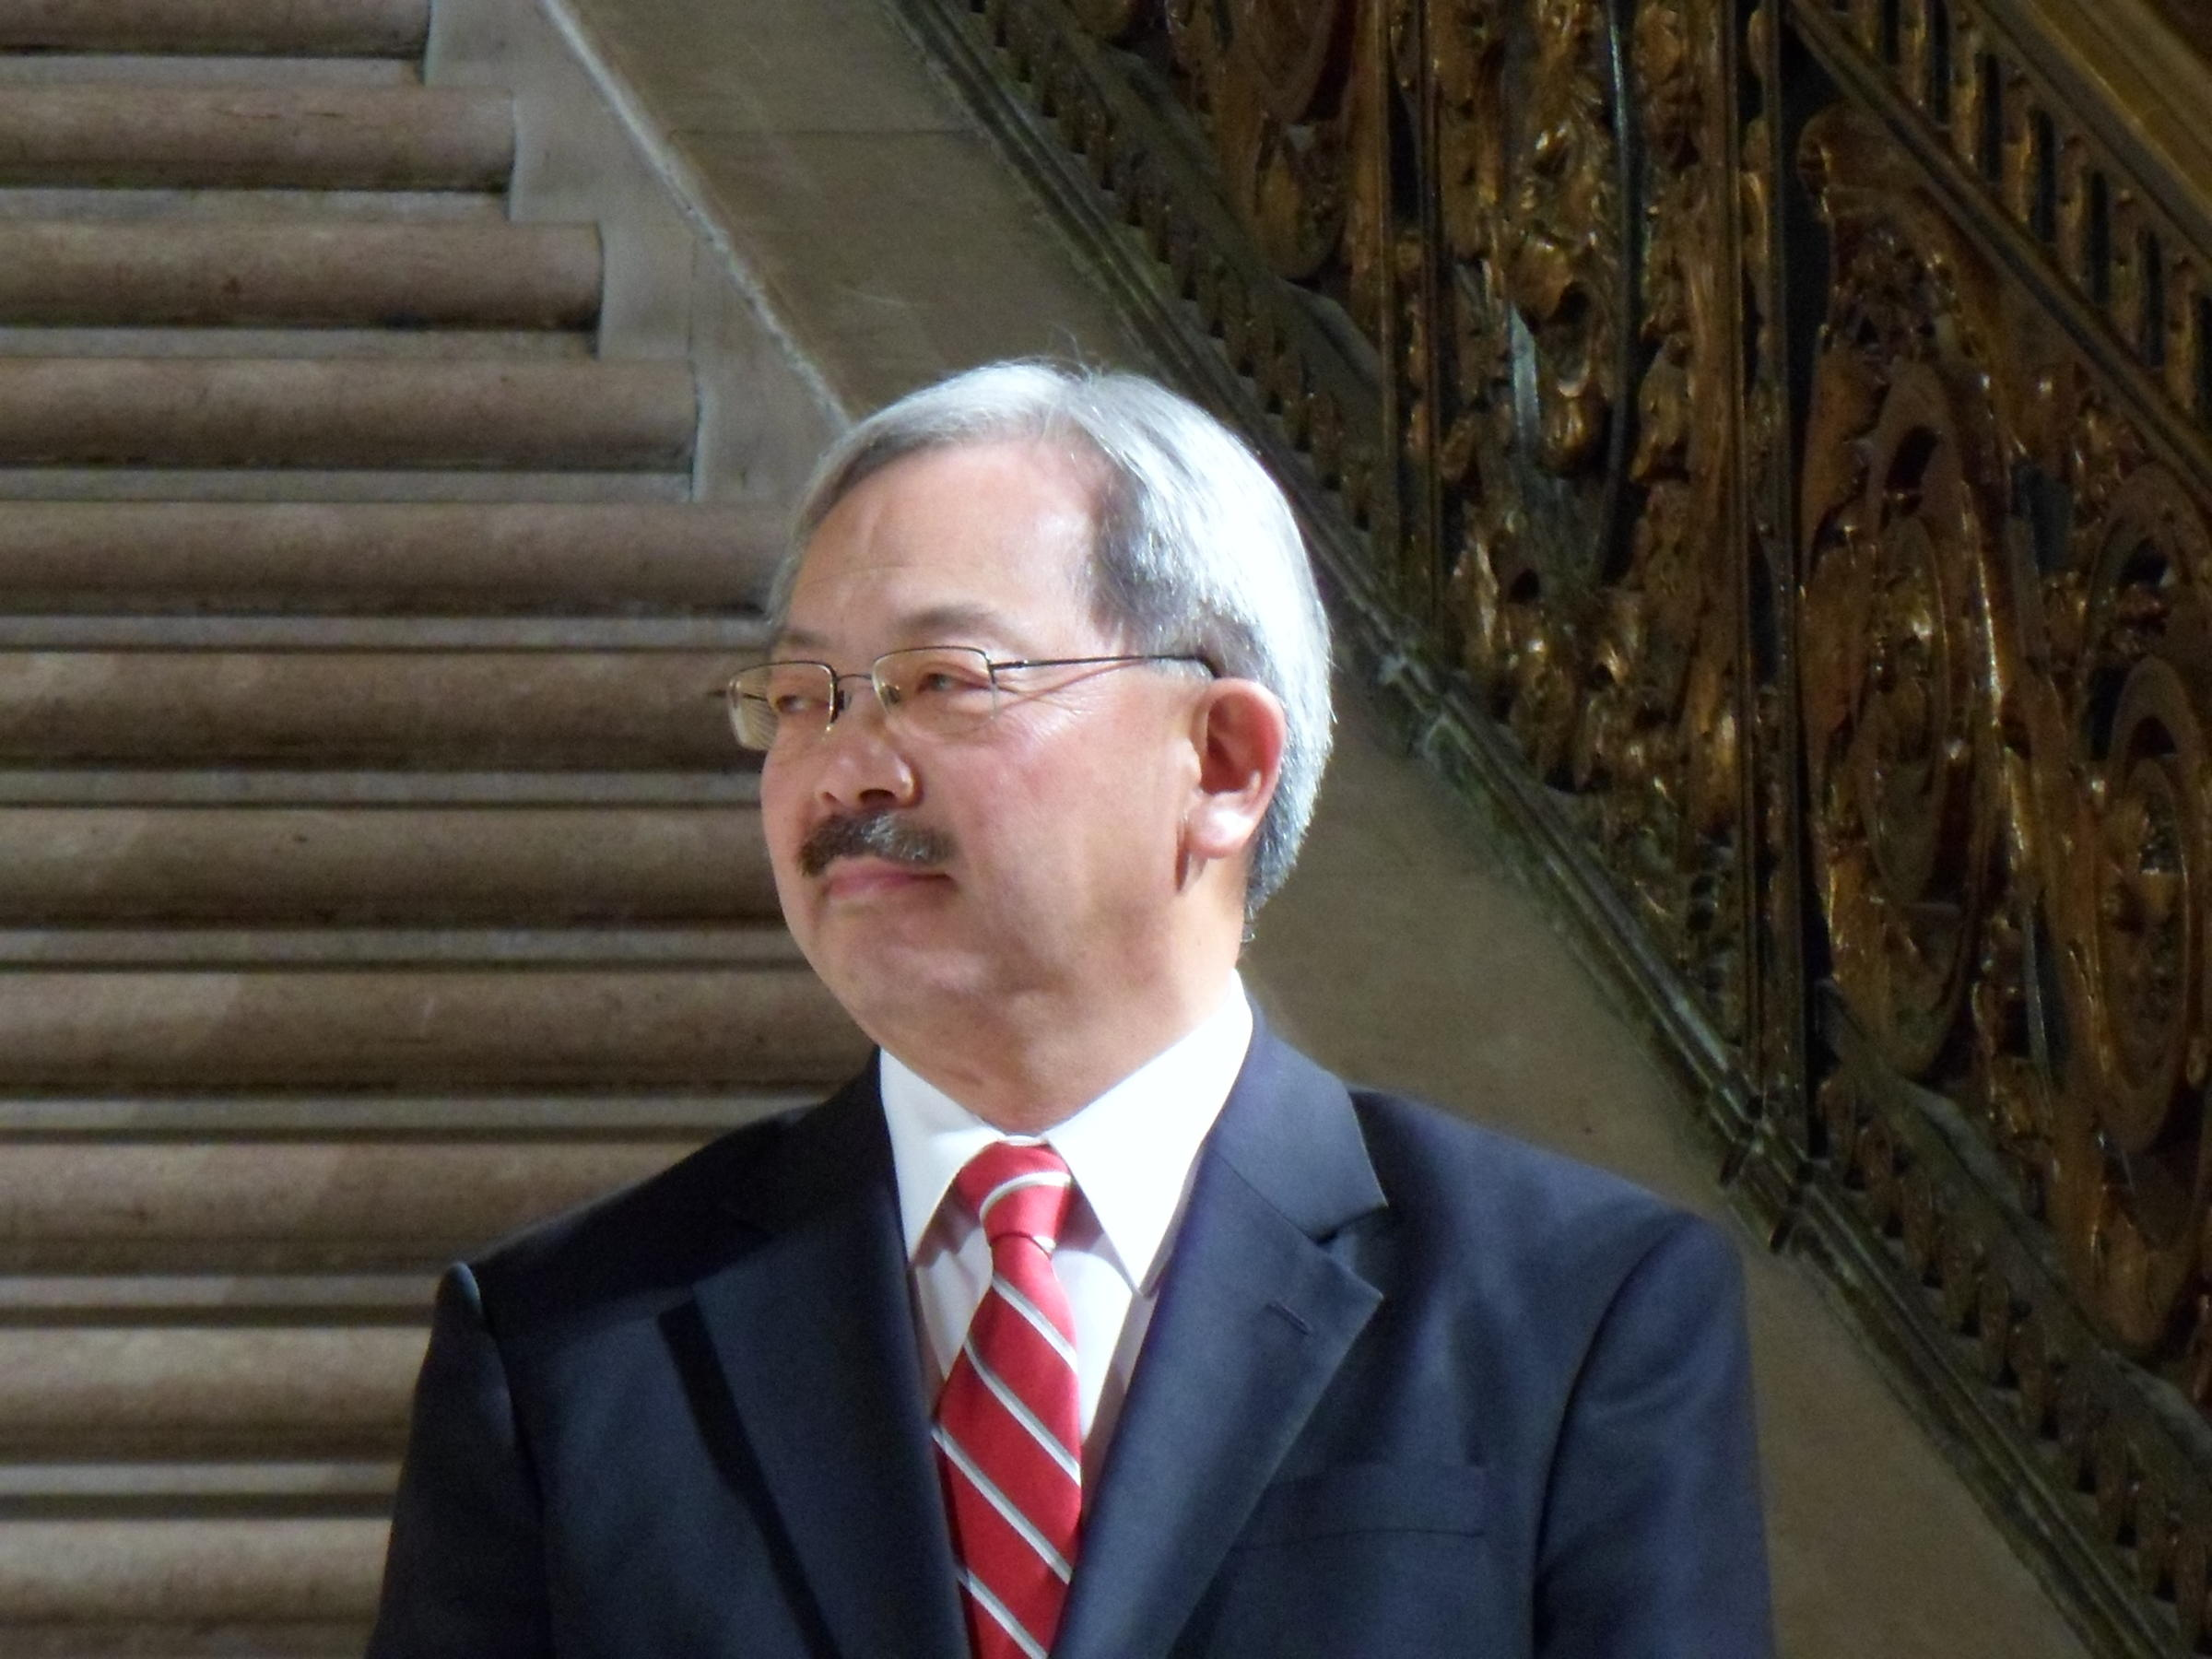 San Francisco neighbors remember Mayor Ed Lee